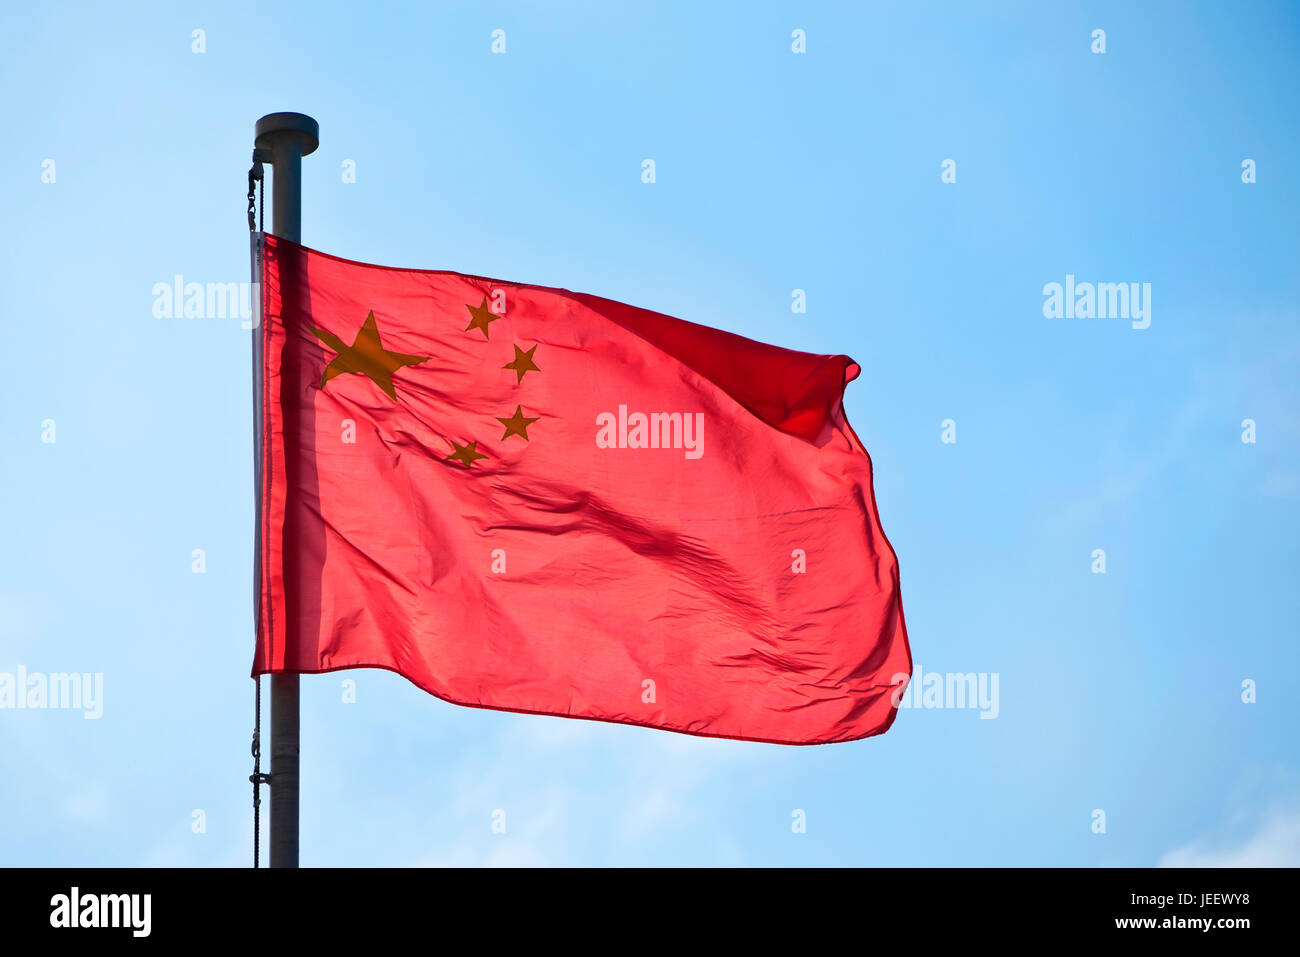 Horizontal close up view of the national flag of China. - Stock Image